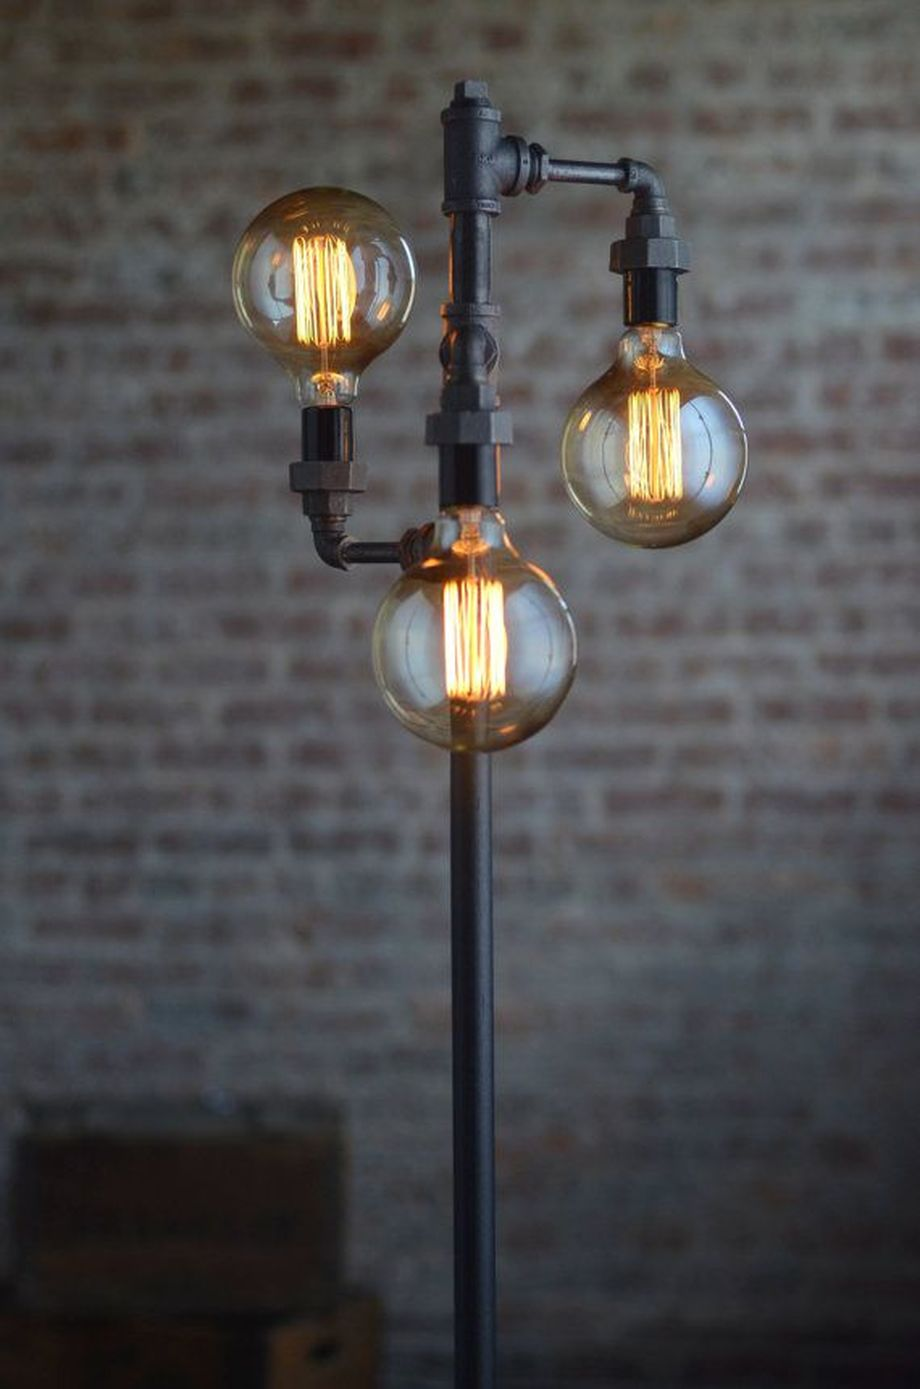 Fascinating Industrial Floor Lamp for Home Decorations 1